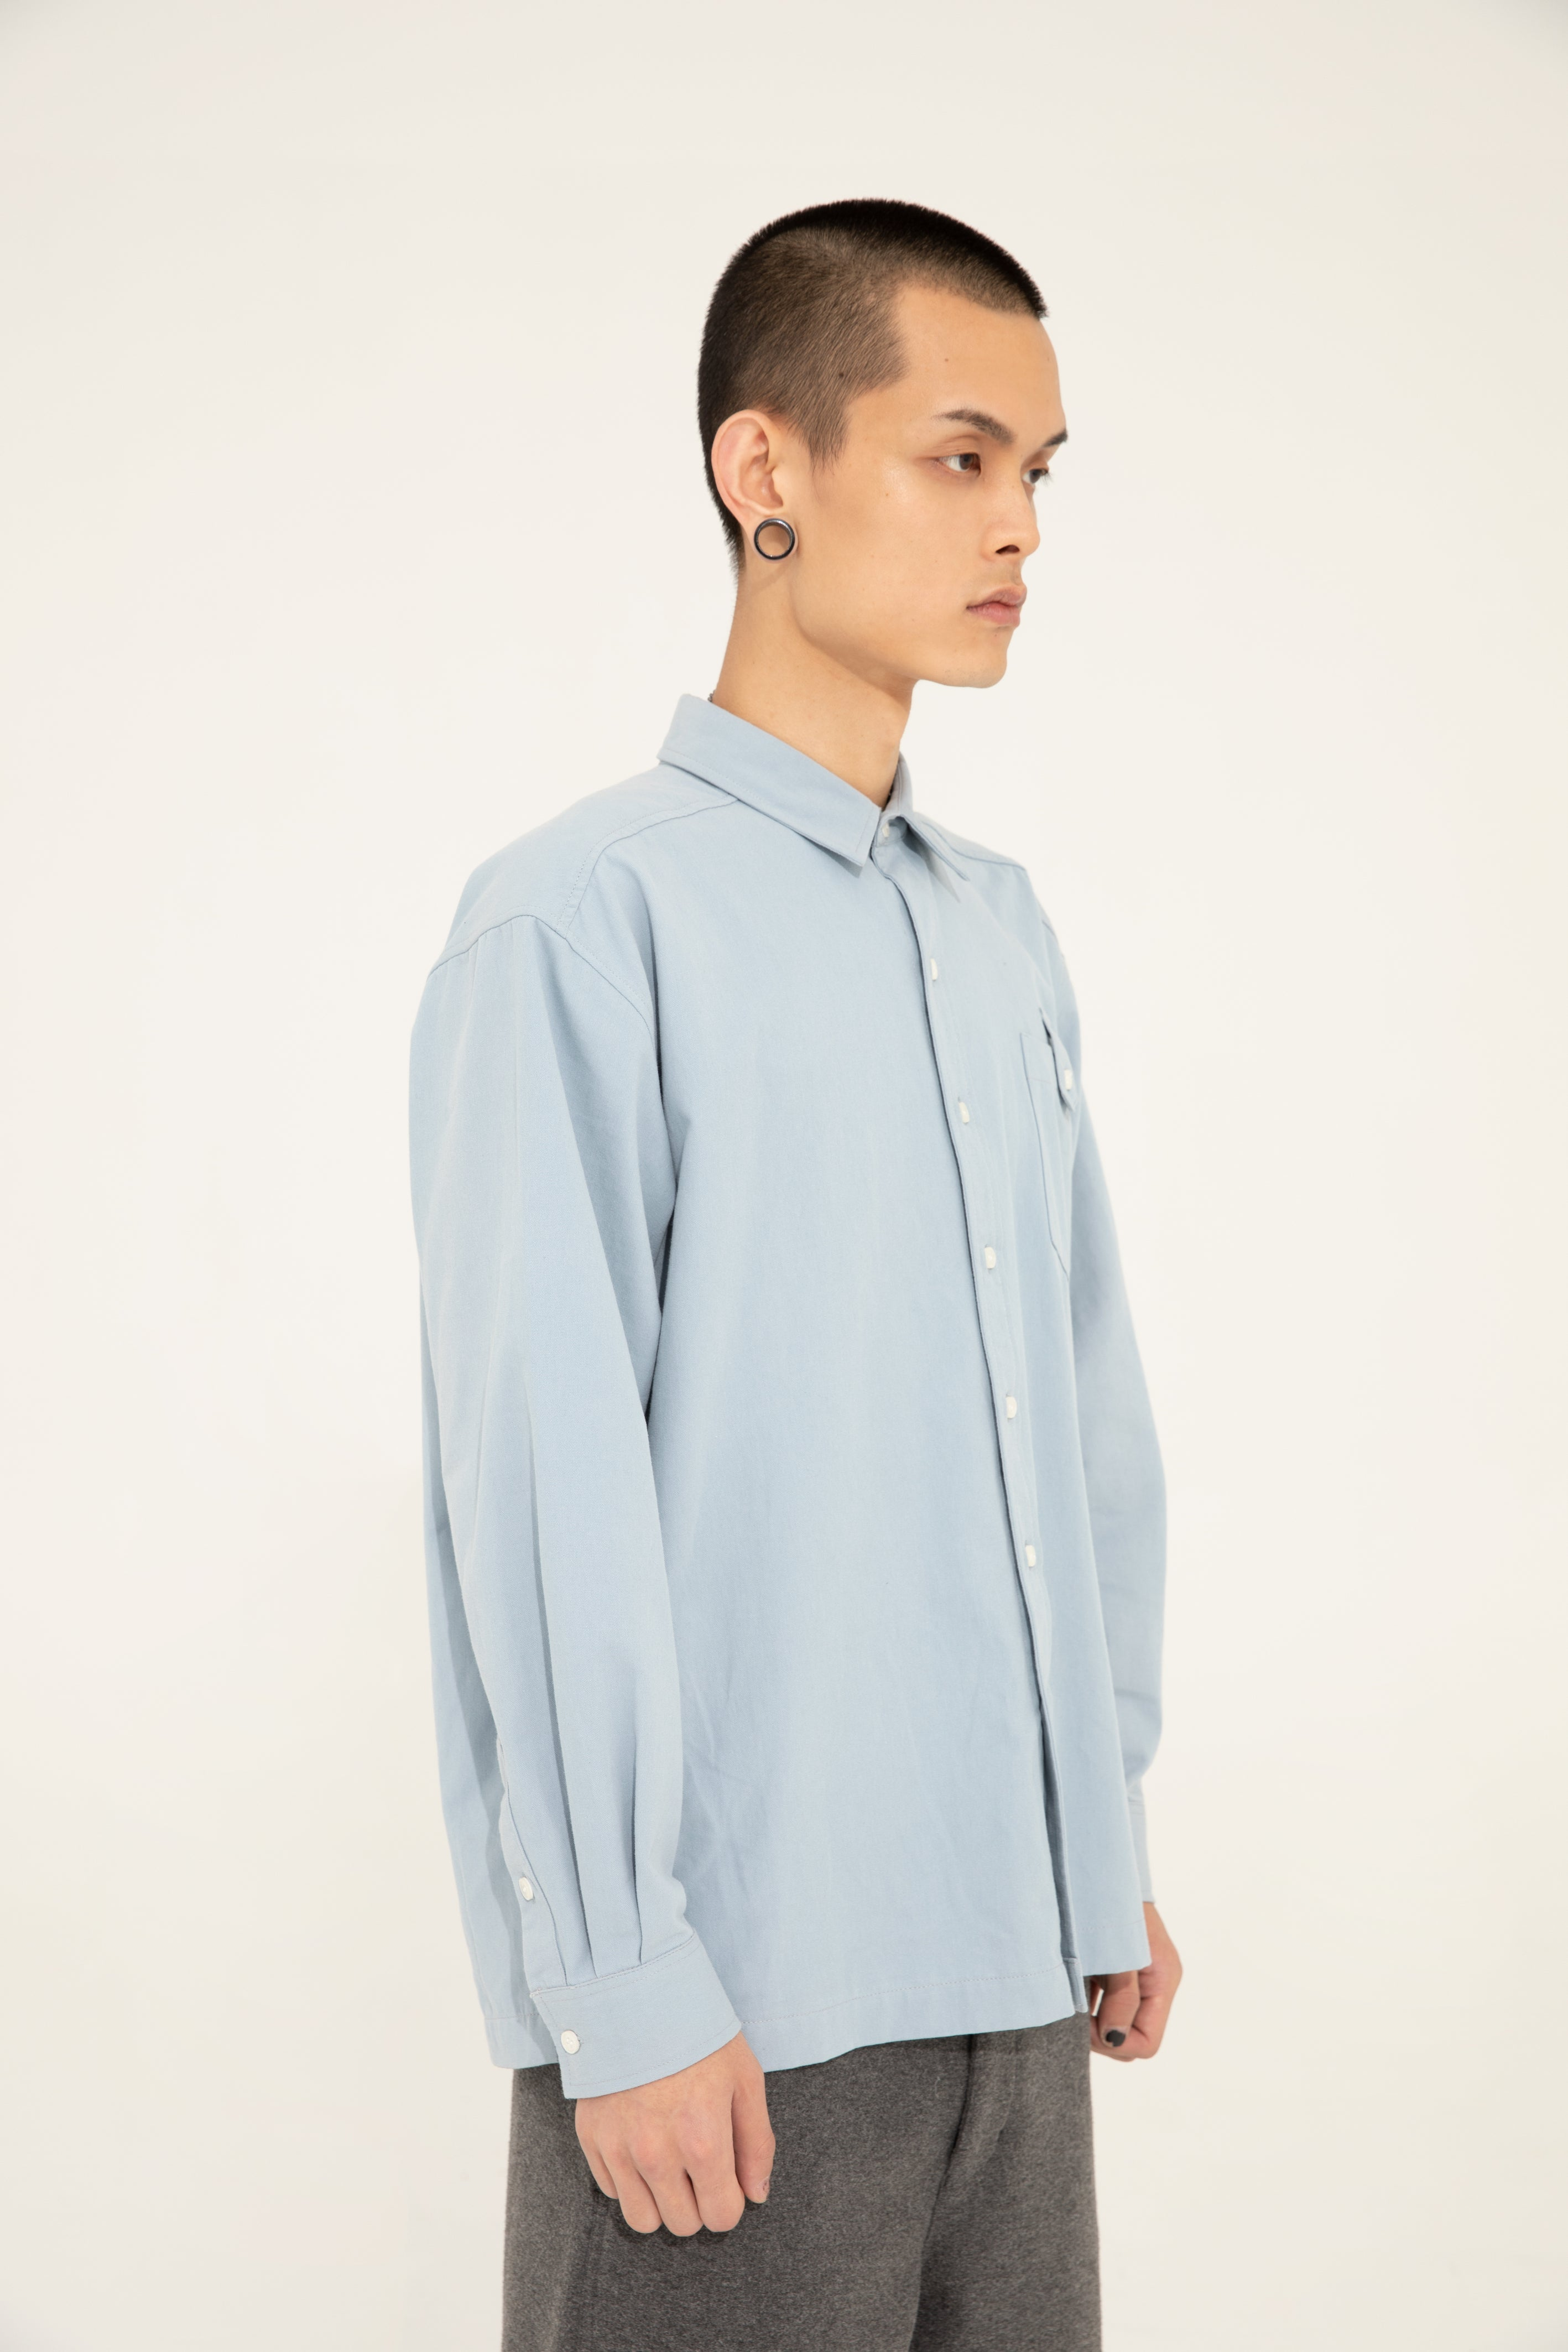 BUTTON SHIRT - BLUE